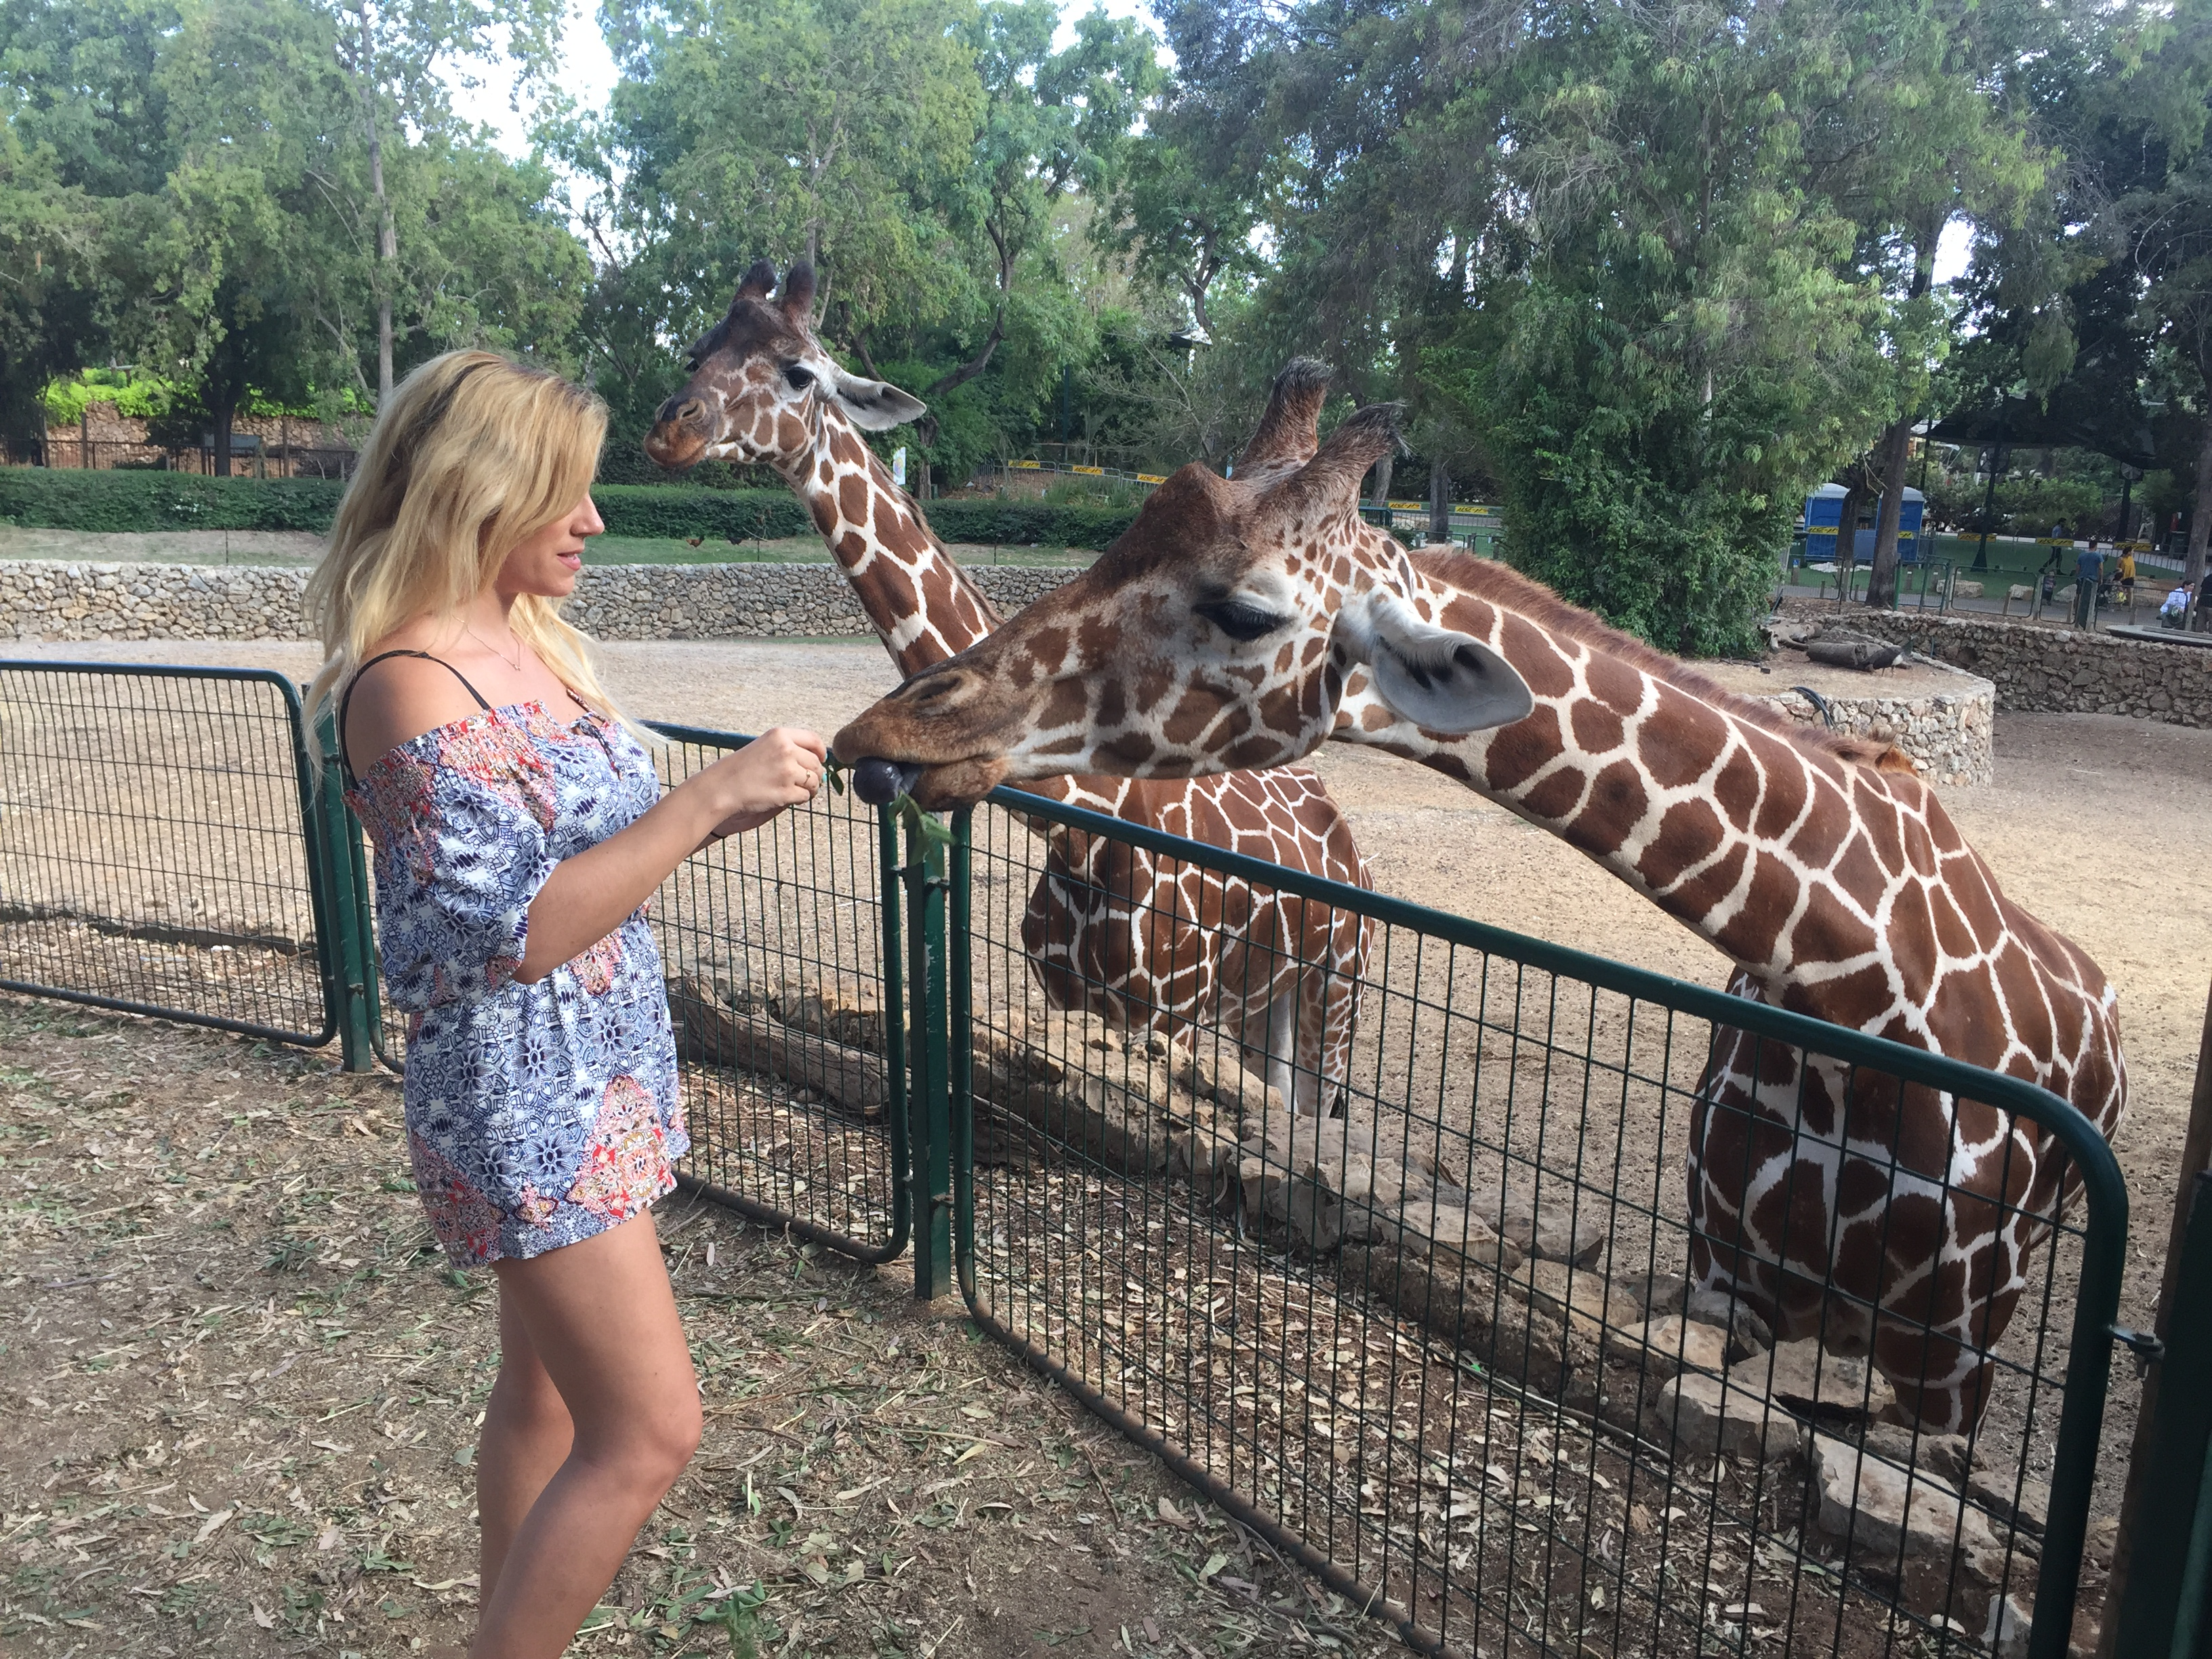 Feeding Giraffes in Ramat Gan Safari Zoo + Wildlife + Animal Rights